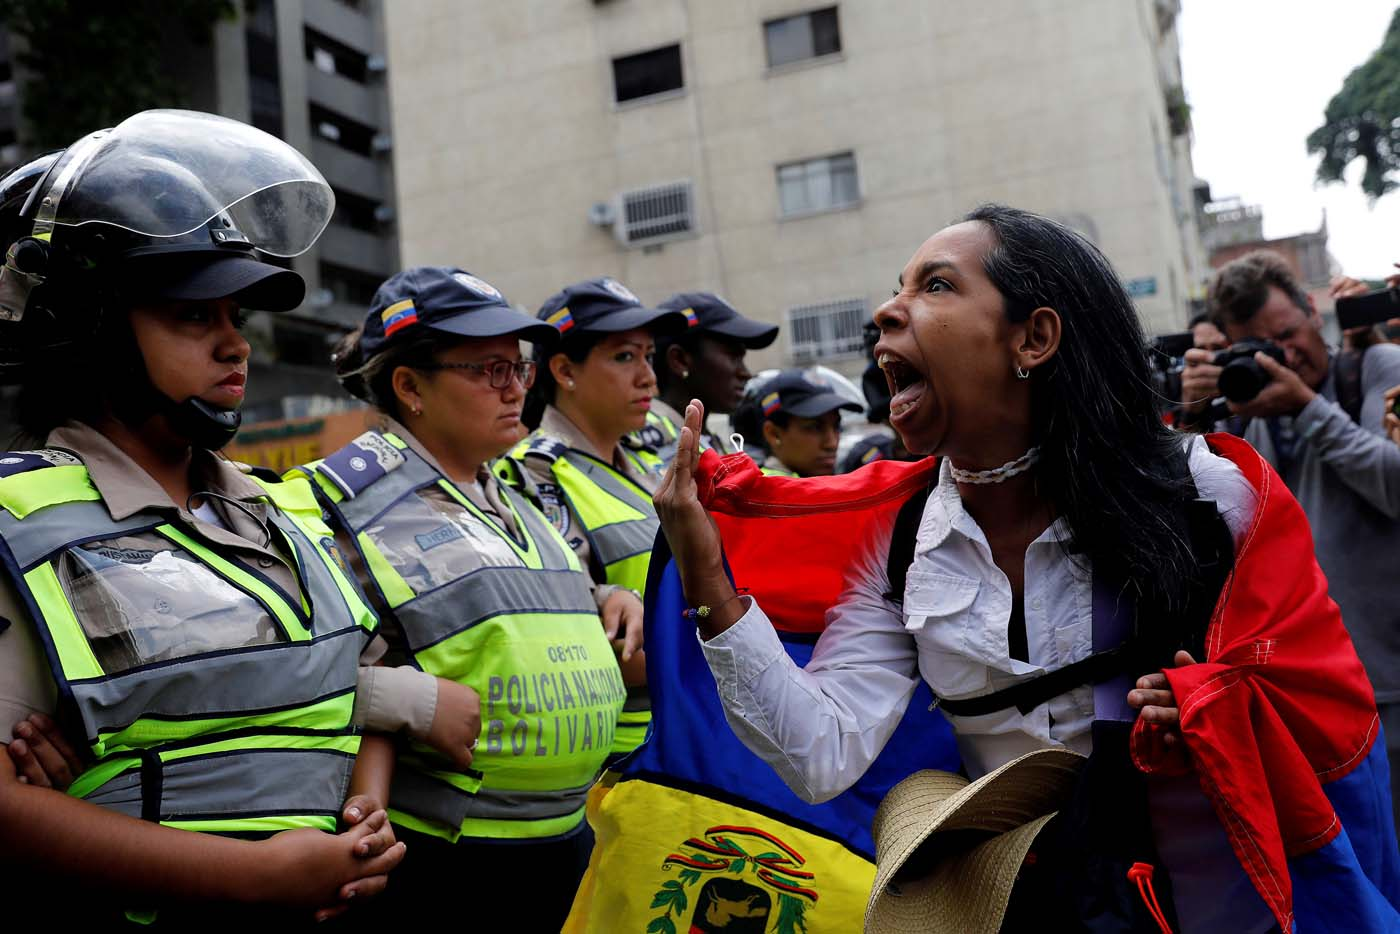 A demonstrator shouts slogans in front of police officers during a women's march to protest against President Nicolas Maduro's government in Caracas, Venezuela May 6, 2017. REUTERS/Carlos Garcia Rawlins